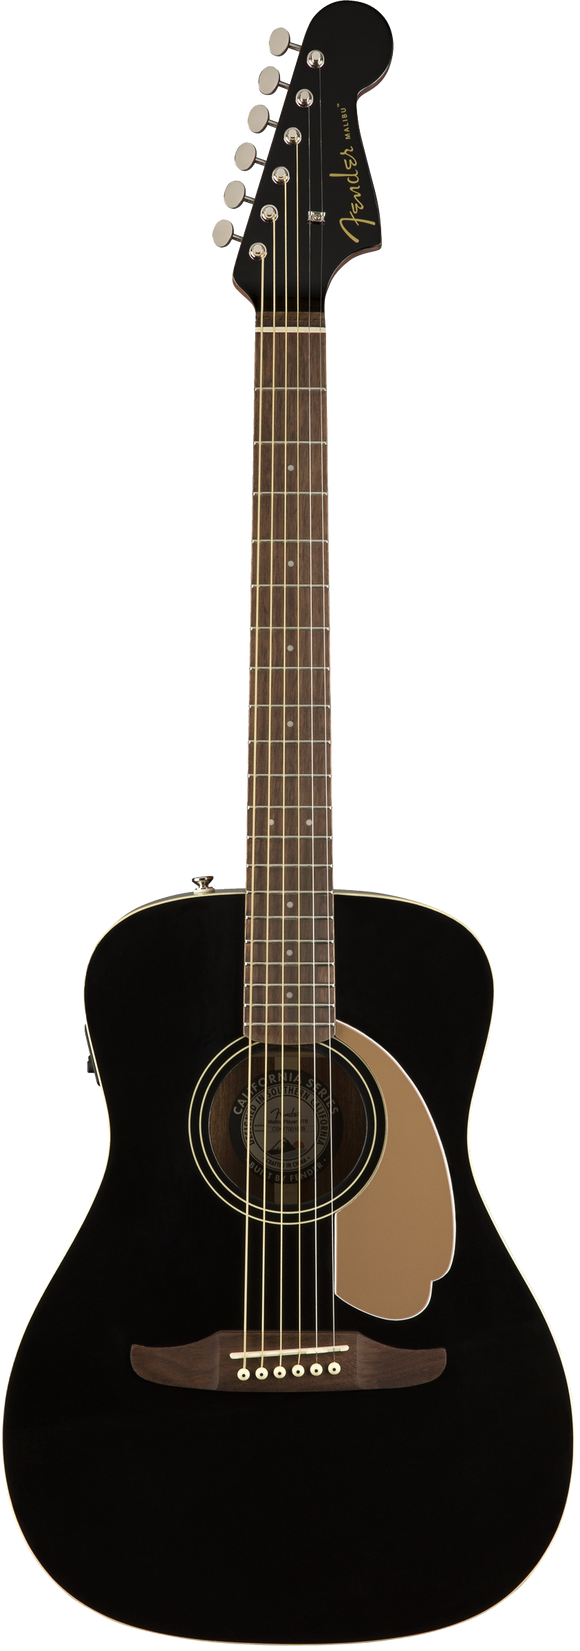 Fender Malibu Player Acoustic / Electric Guitar - Jetty Black